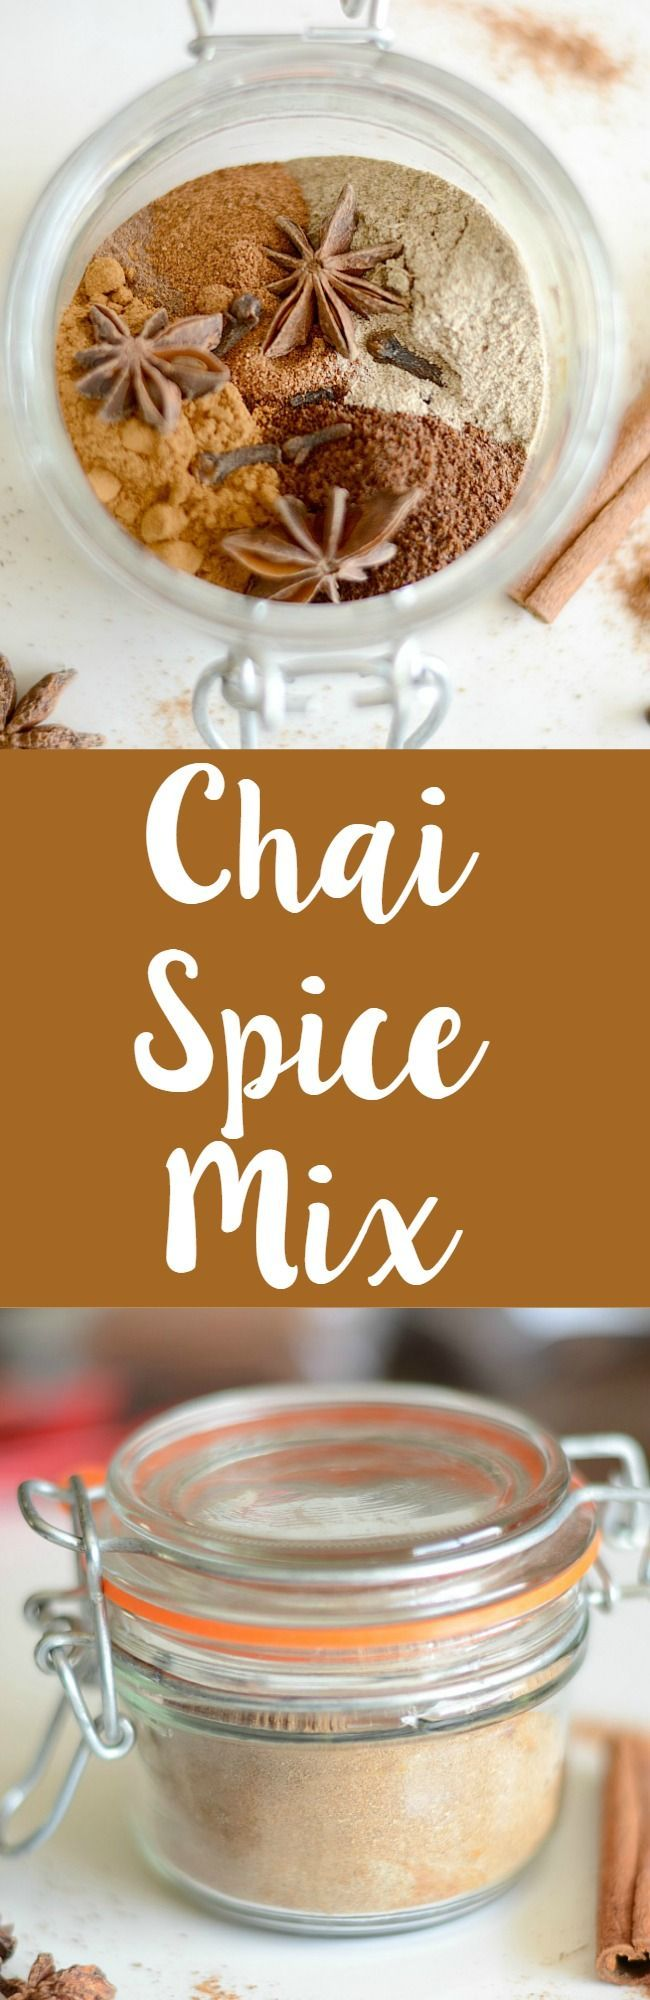 Chai spice mix recipe.  Make your own chai mix at home and have it one hand for lattes!: